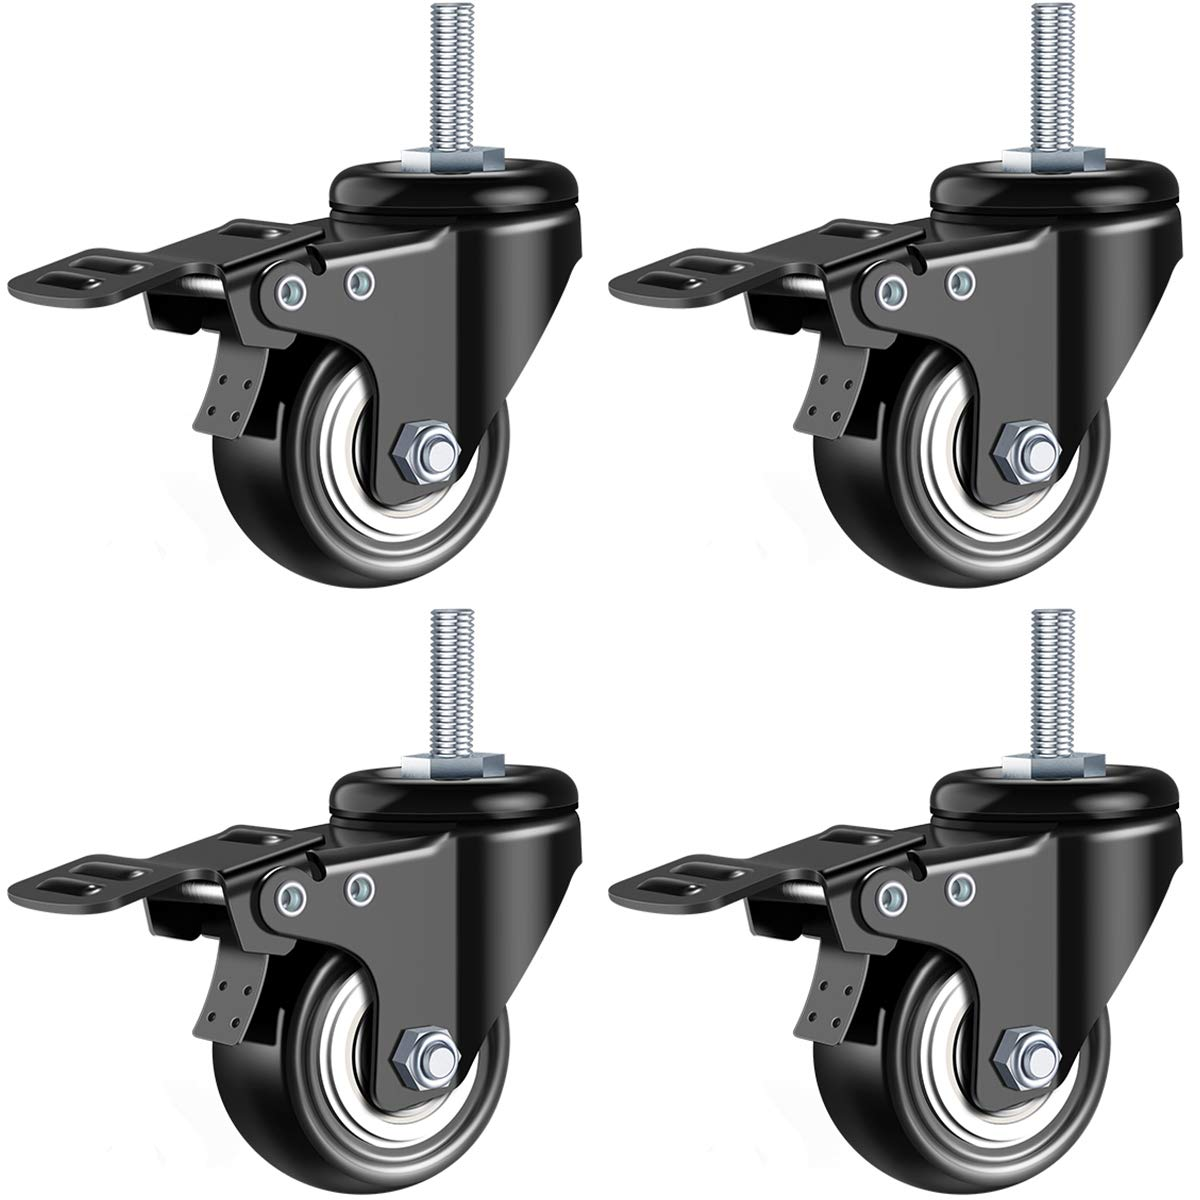 DICASAL 2 Stem Casters Heavy Duty Swivel Stem Casters PU Foam Quite Mute No Noise Castors Markless Wheels Double Bearings and Locks Loading 300 Lbs Pack of 4 with Brake Black